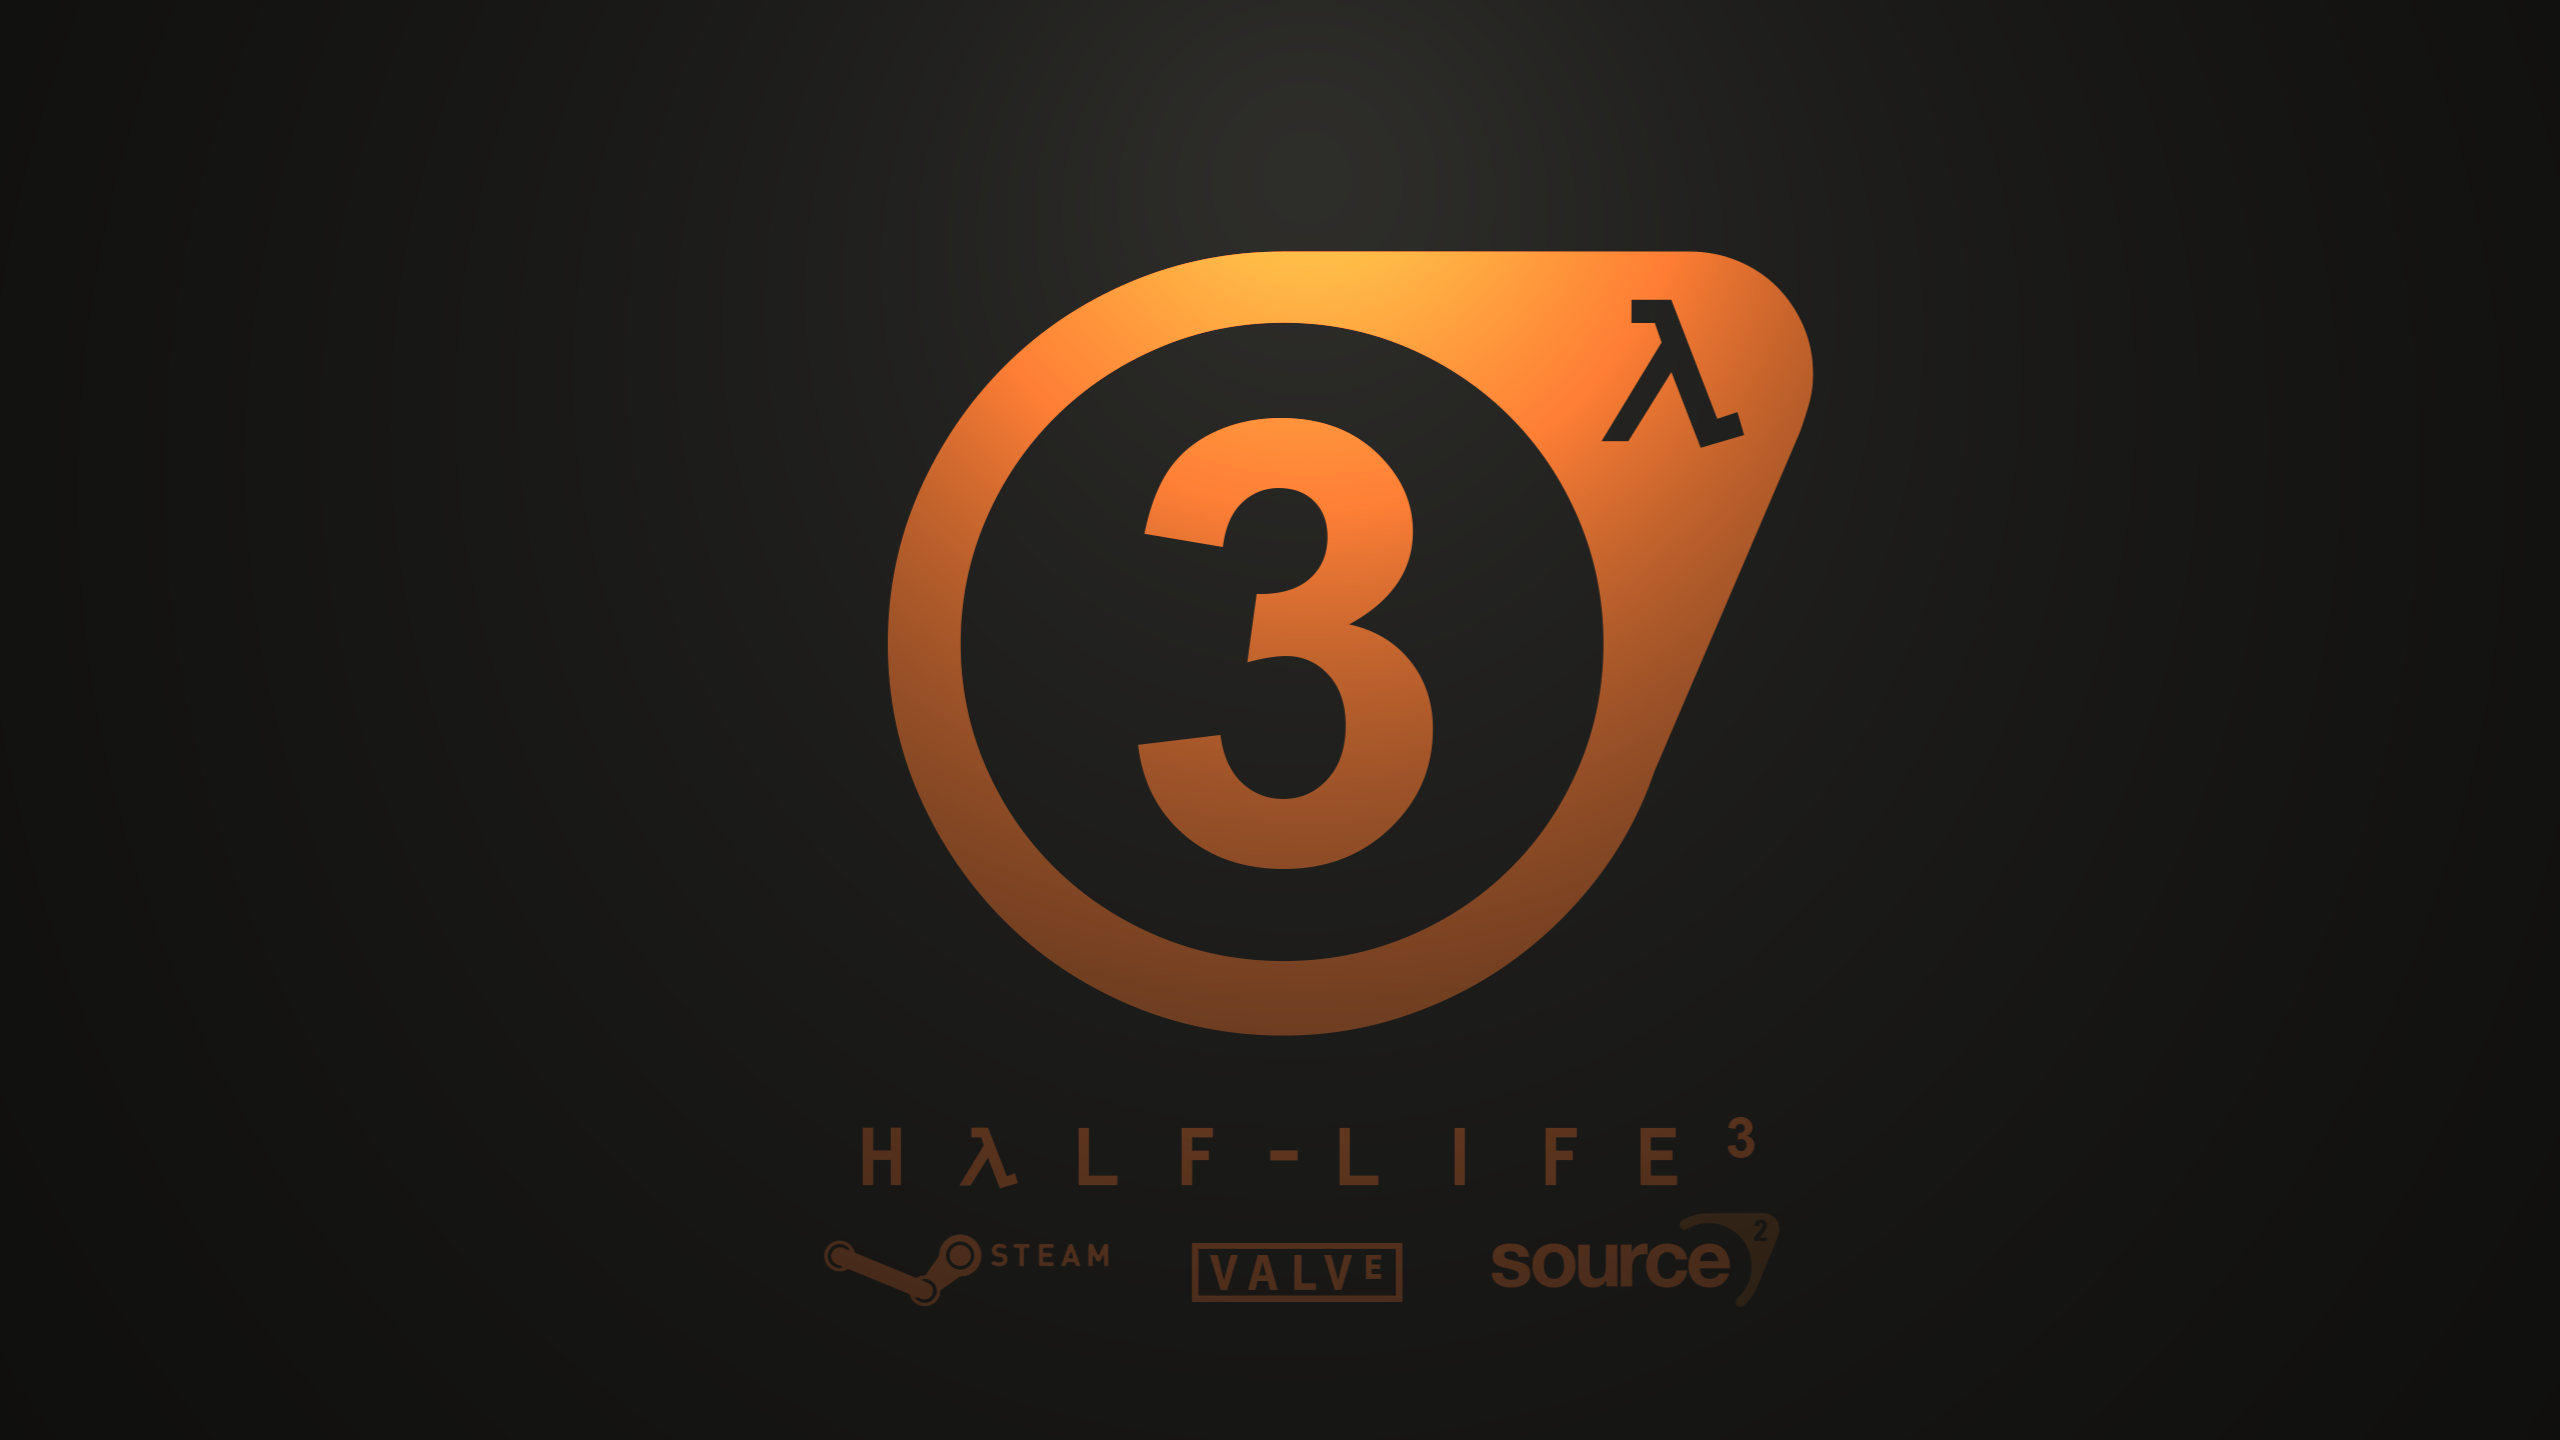 11 Games We Want To See At E3 Half Life 3